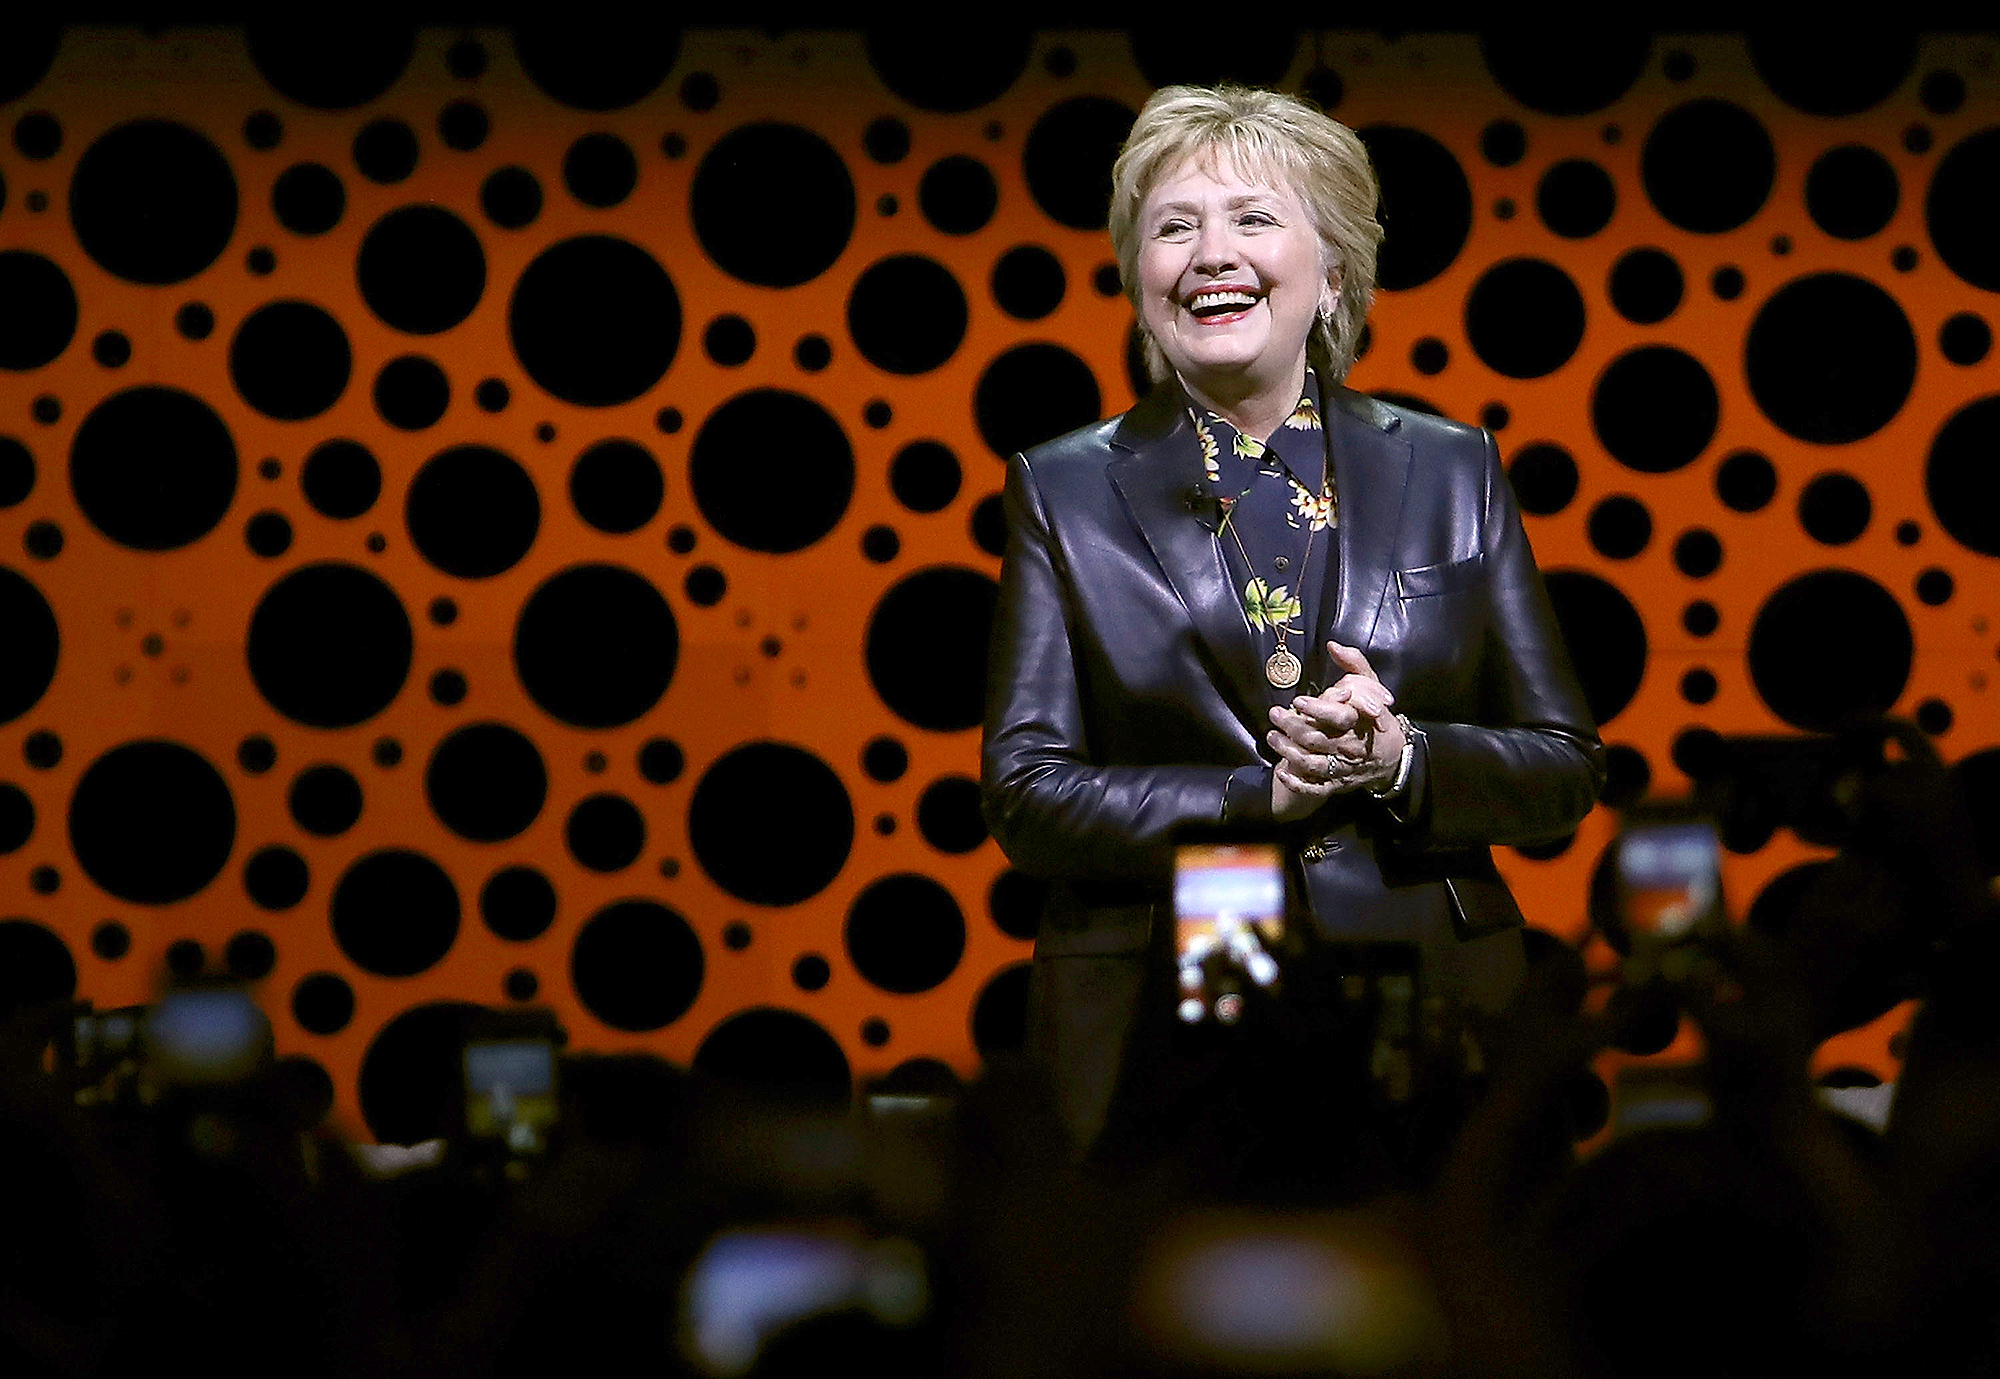 Former Secretary of State Hillary Clinton delivers a keynote address during the 28th Annual Professional Business Women of California conference on March 28, 2017 in San Francisco, California.